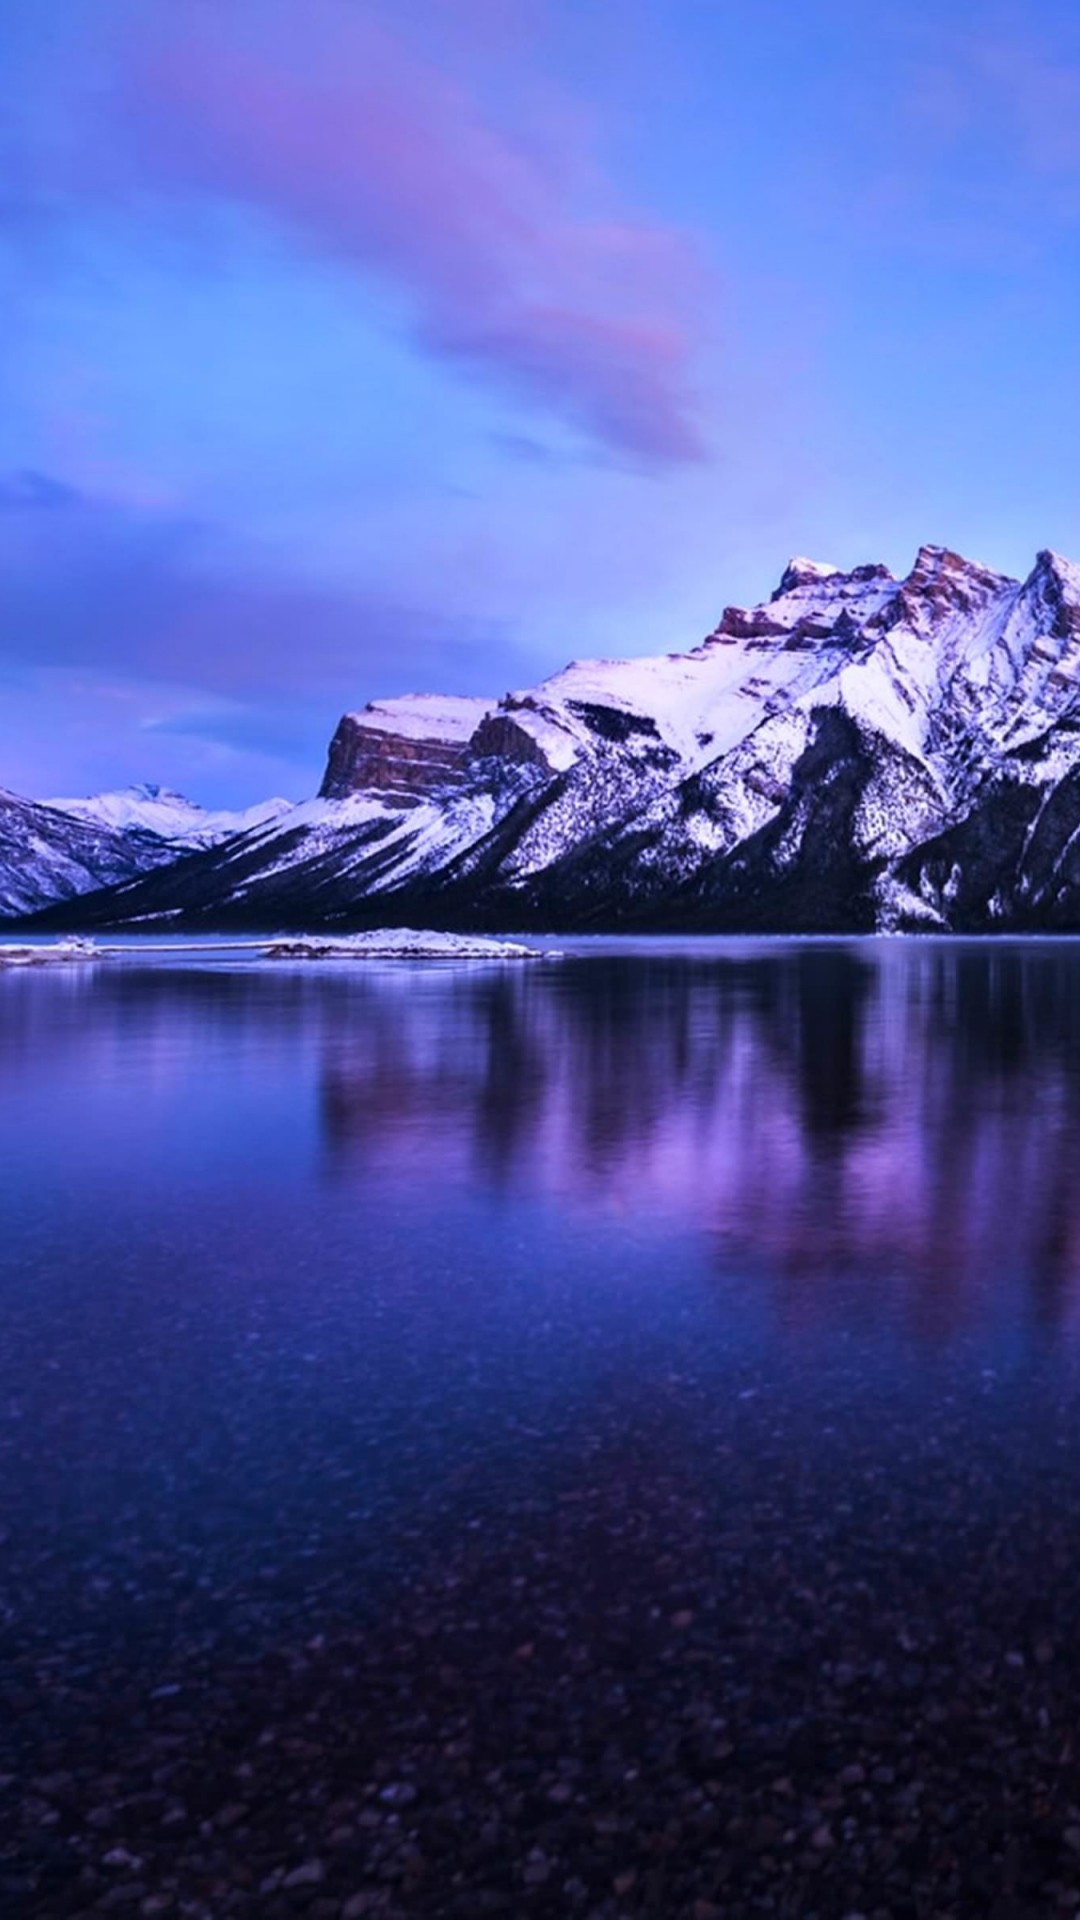 Banff National Park Wallpaper for SAMSUNG Galaxy S4